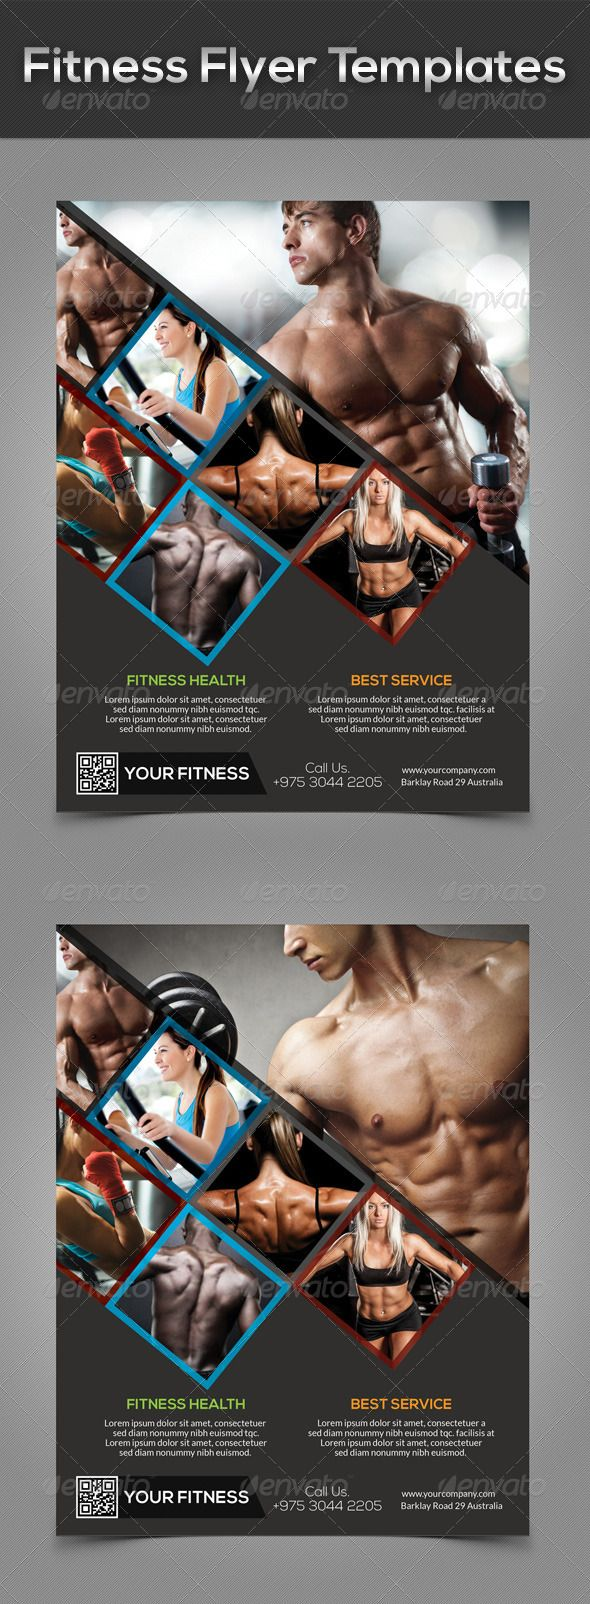 #Fitness #Flyer #Templates   #Sports #Events Download Here: Https: